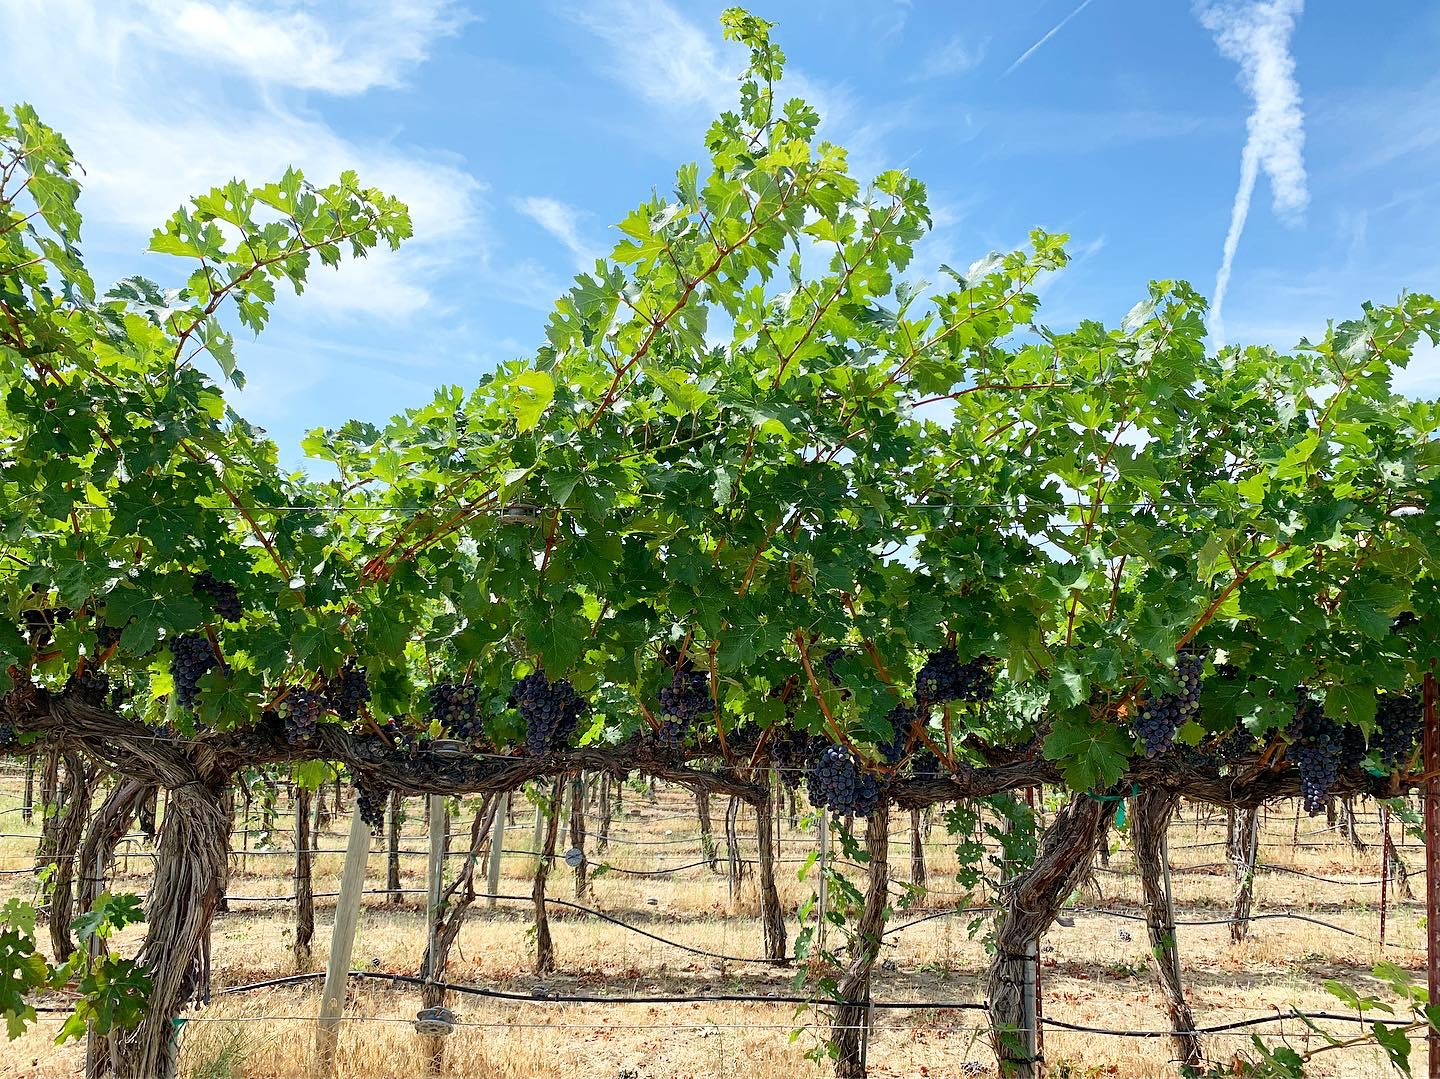 Bright green leaves on grape vines with purple grape clusters hanging below. More rows of vines are visible beyond and the sky above is blue with wisps of white clouds.